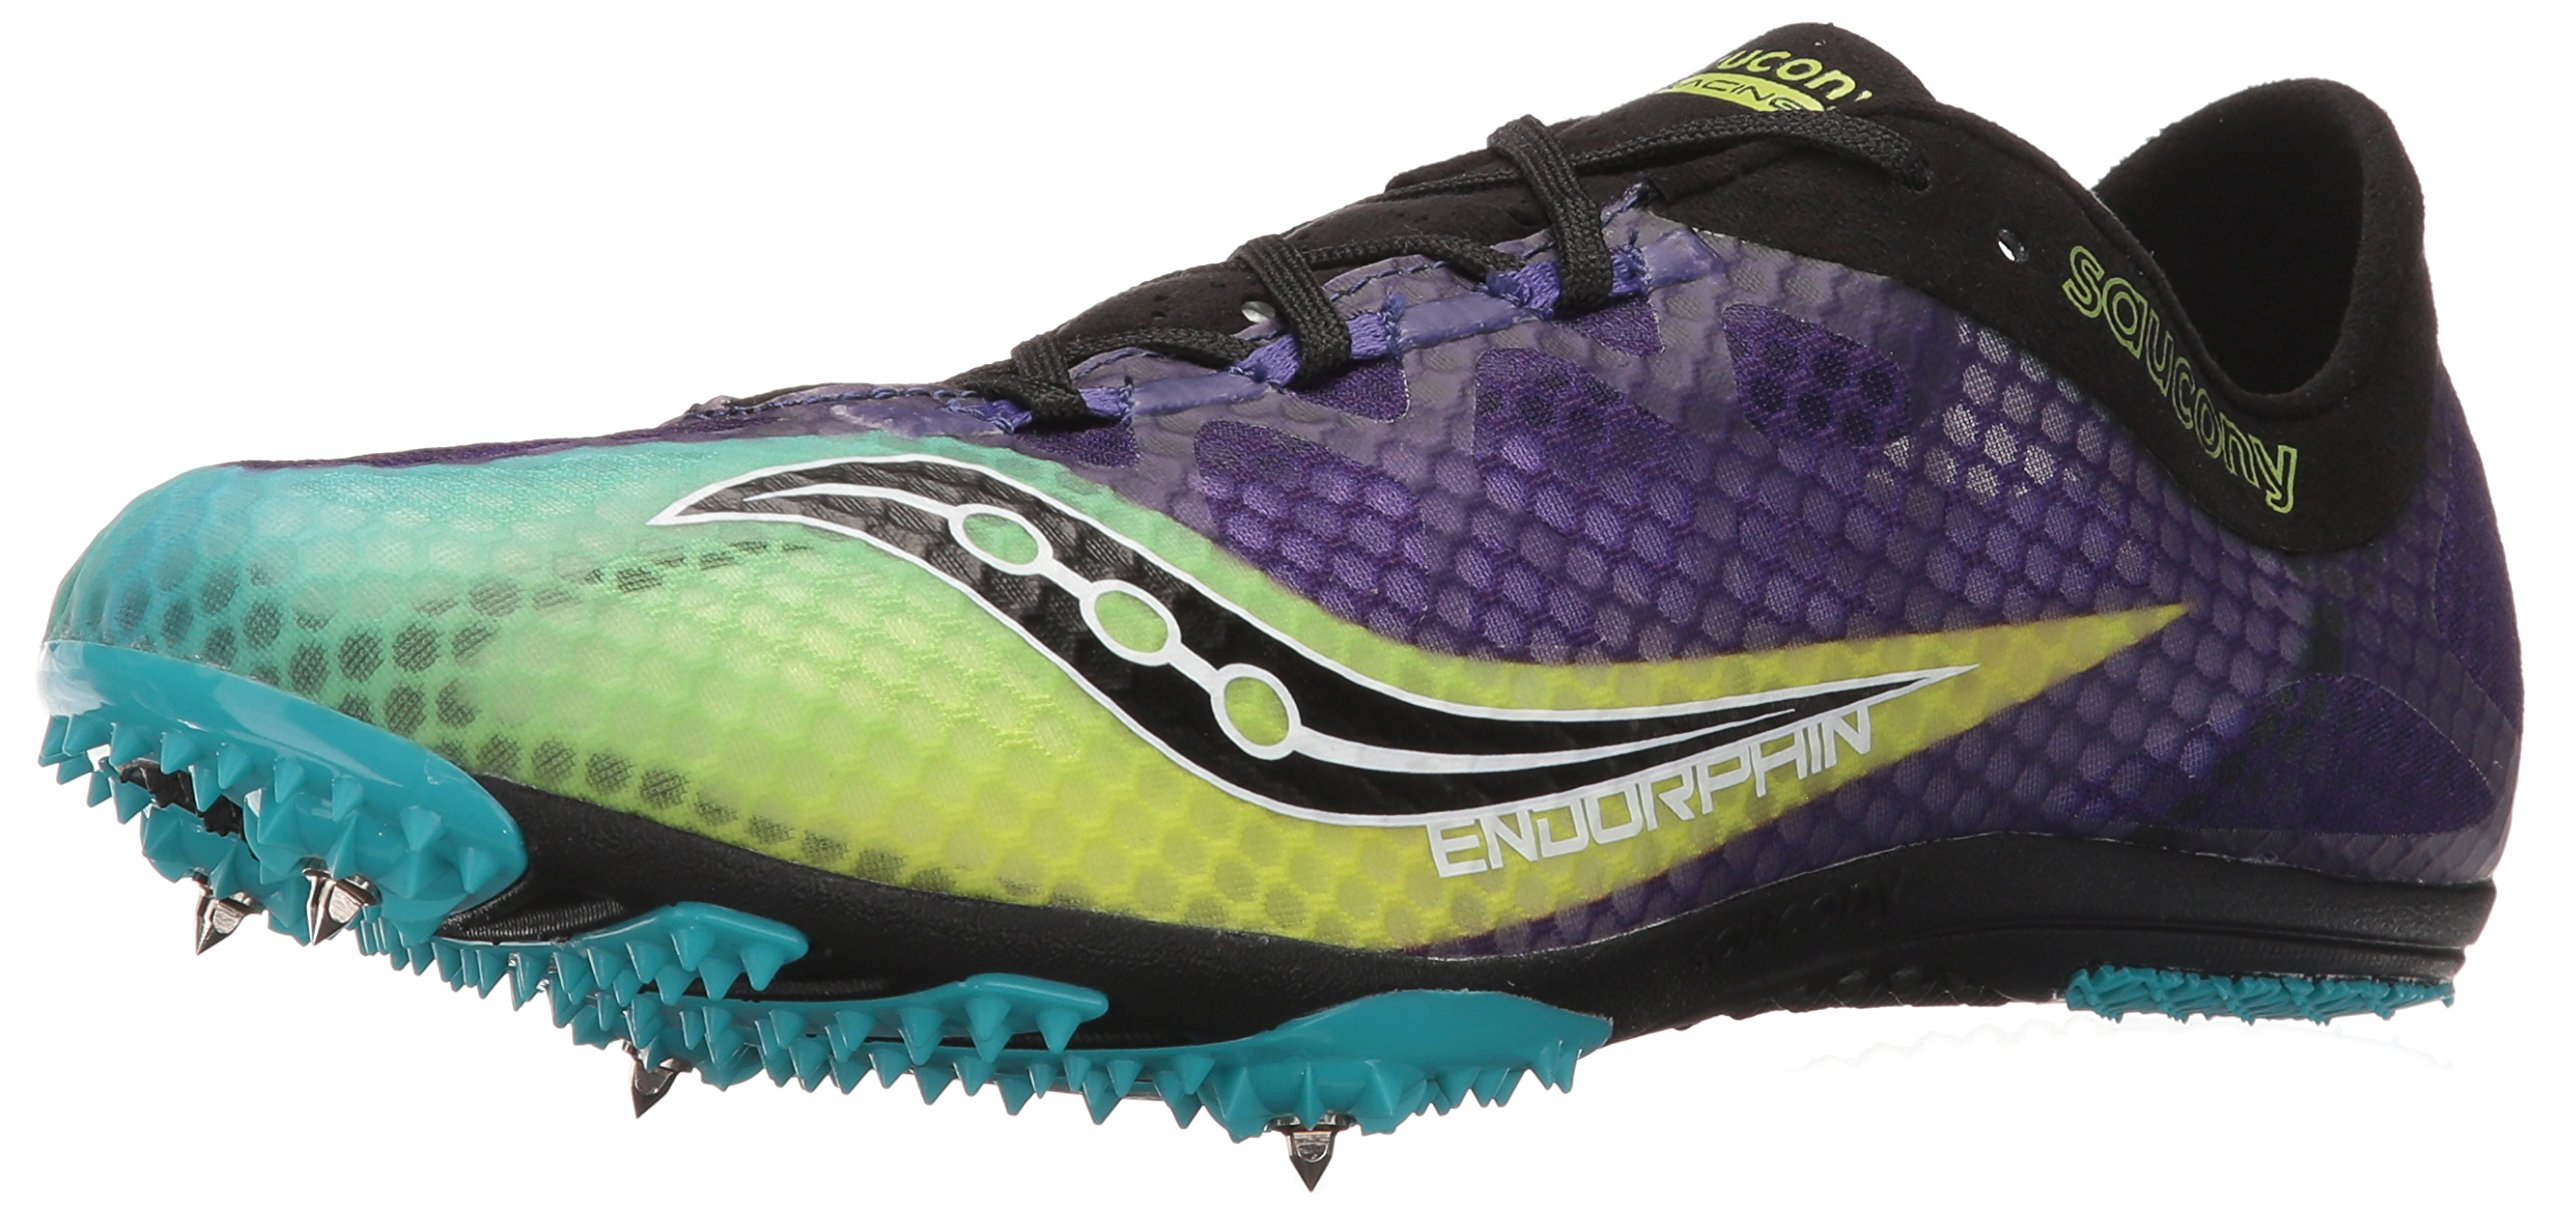 Saucony Men's Endorphin Track Shoe, Purple/Citron/Black, 9 M US by Saucony